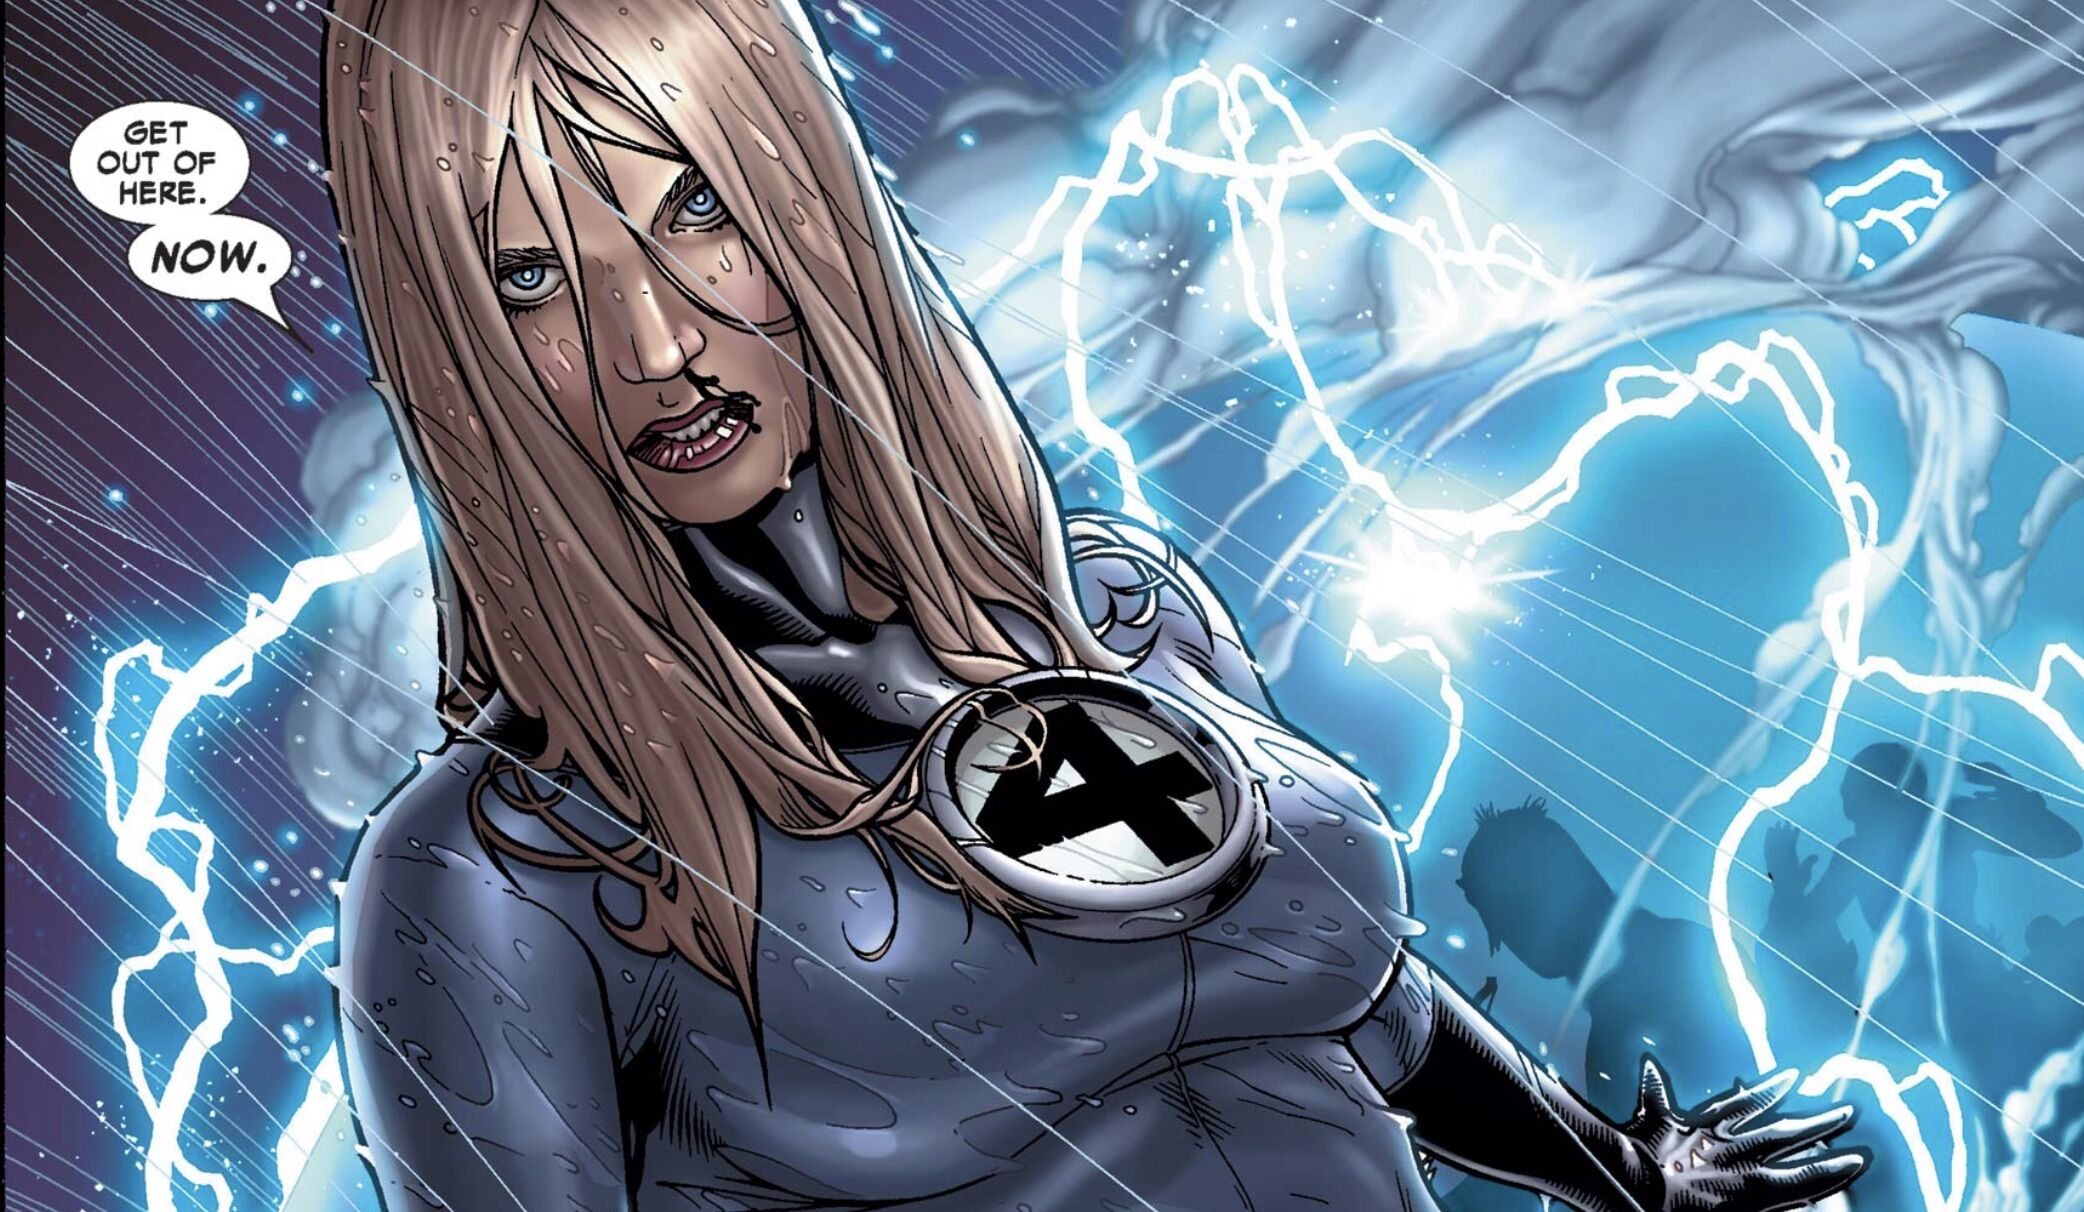 Marvel finally gives the Invisible Woman a solo series coming in July